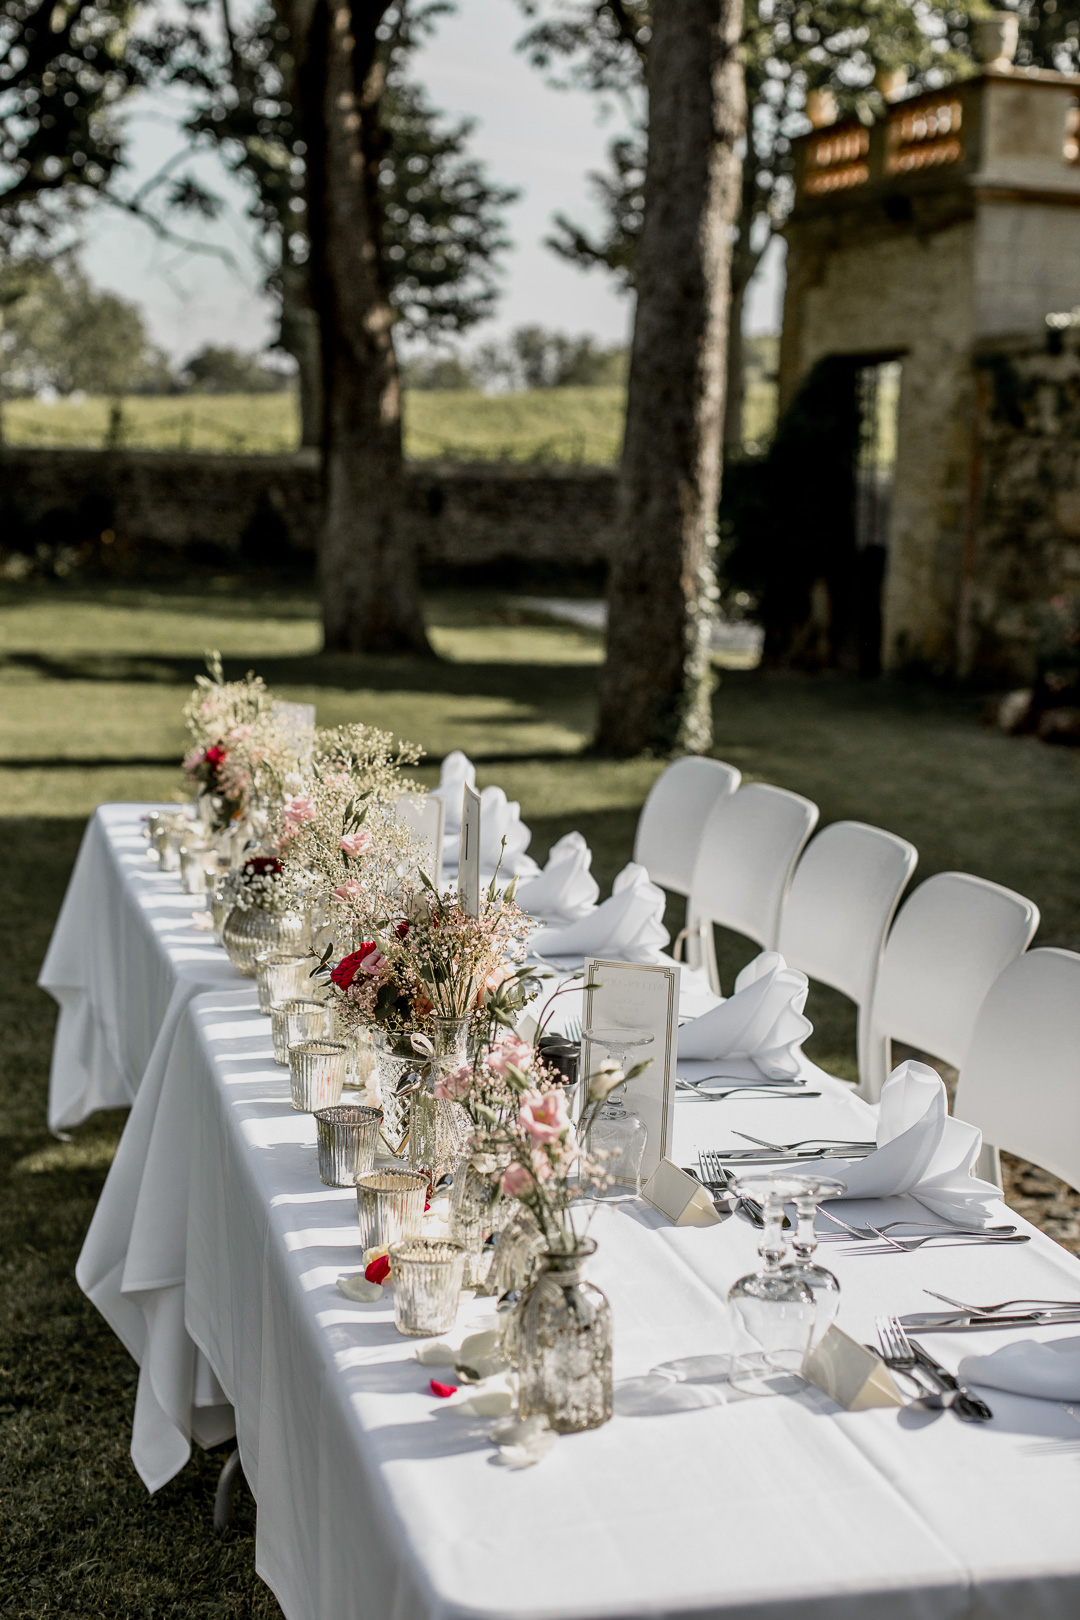 The wedding reception tables were done with delicate florals, white textiles and mercury glass vases and candle holders